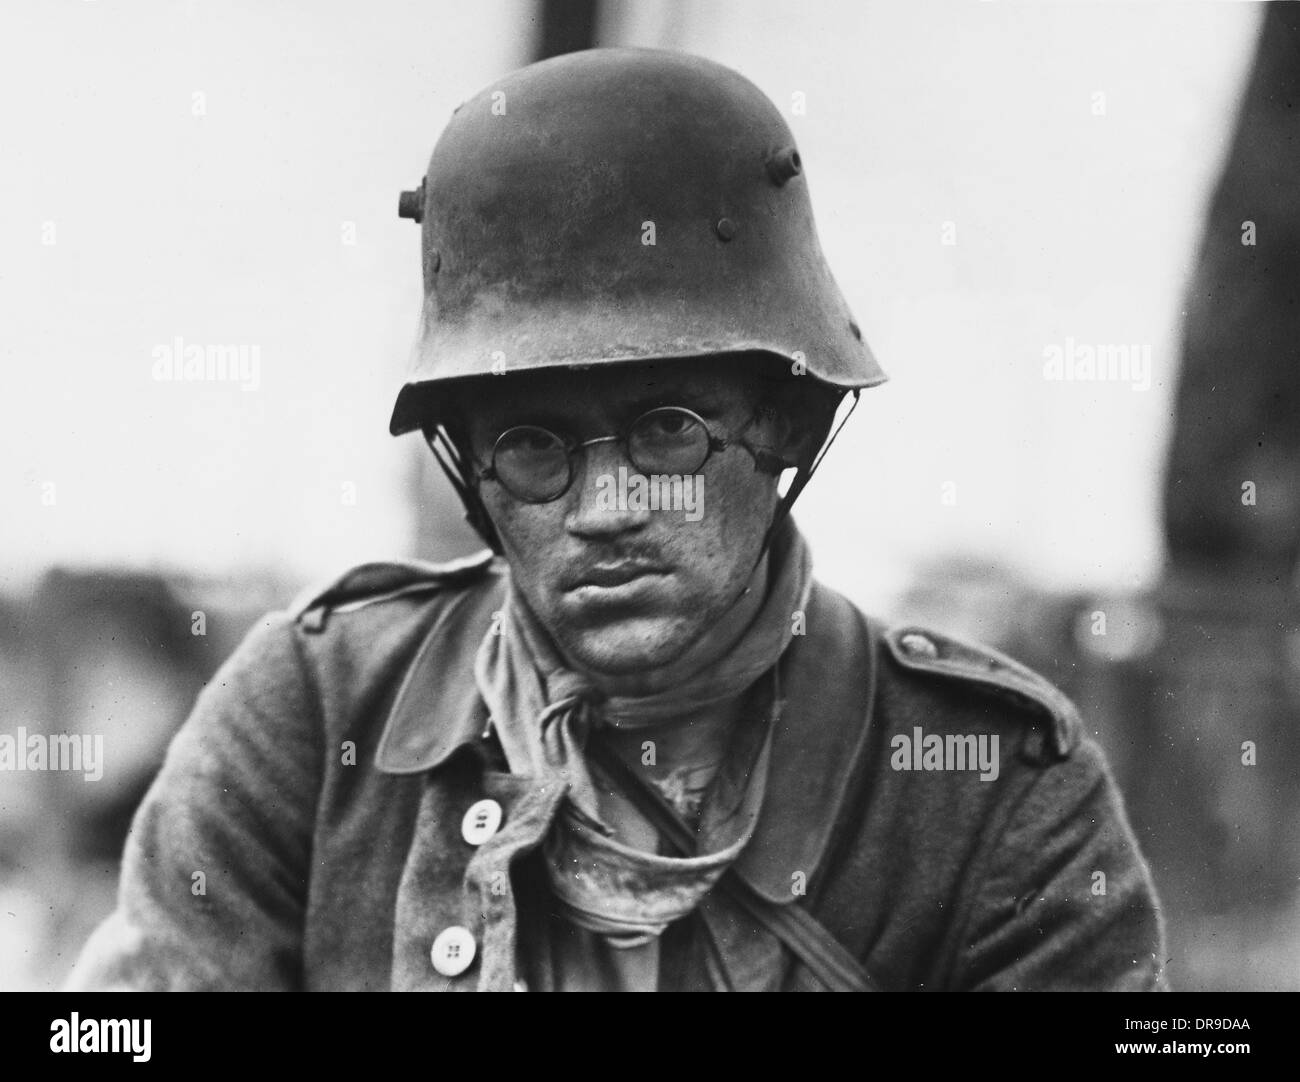 Soldier on the Western Front - Stock Image